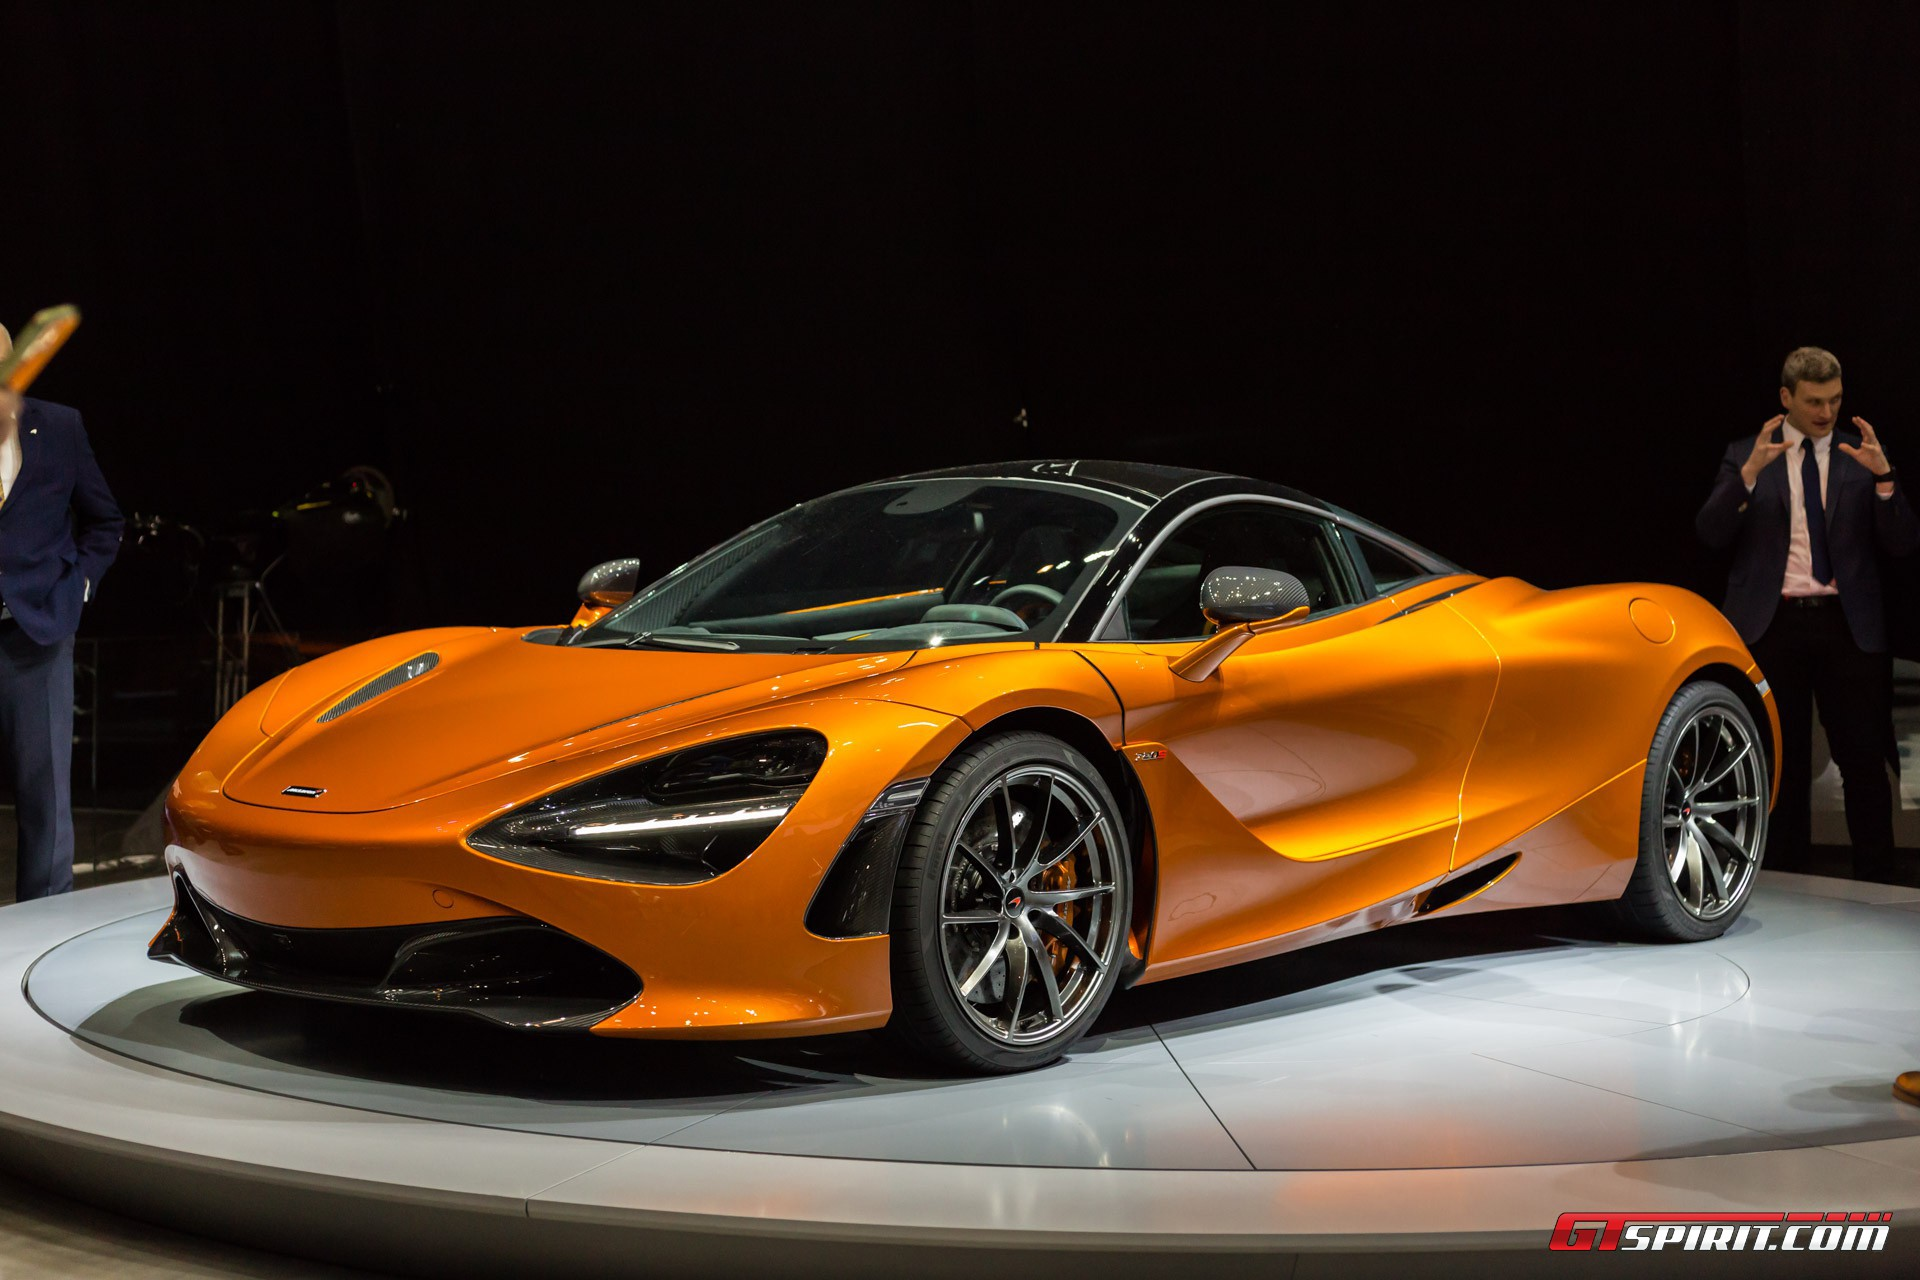 McLaren 720S on display at the Geneva Motor Show 2017